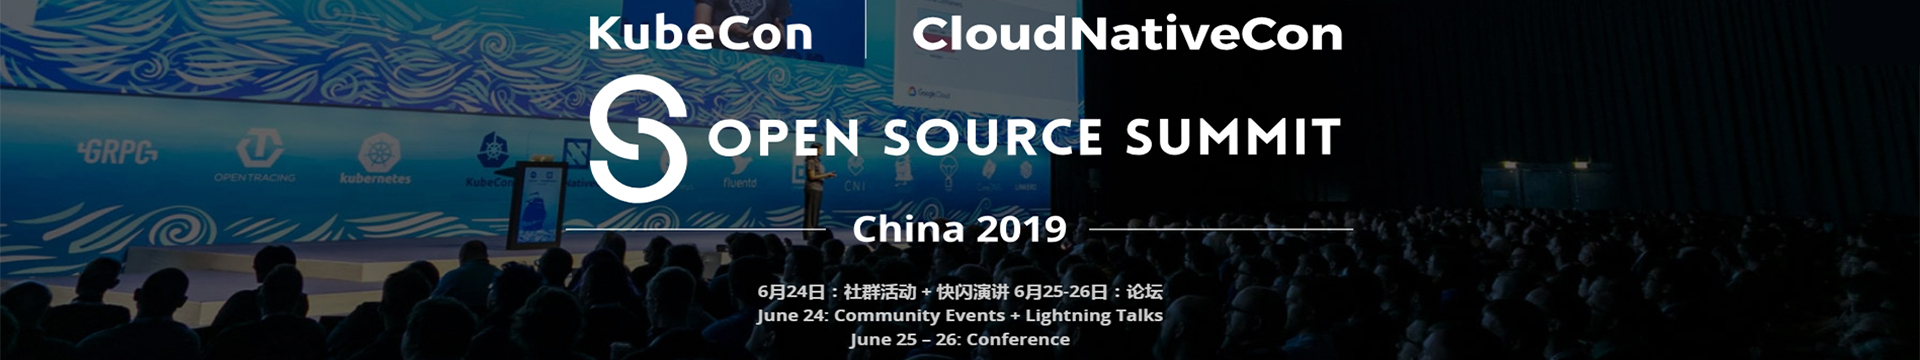 KubeCon + CloudNativeCon论坛 2019上海